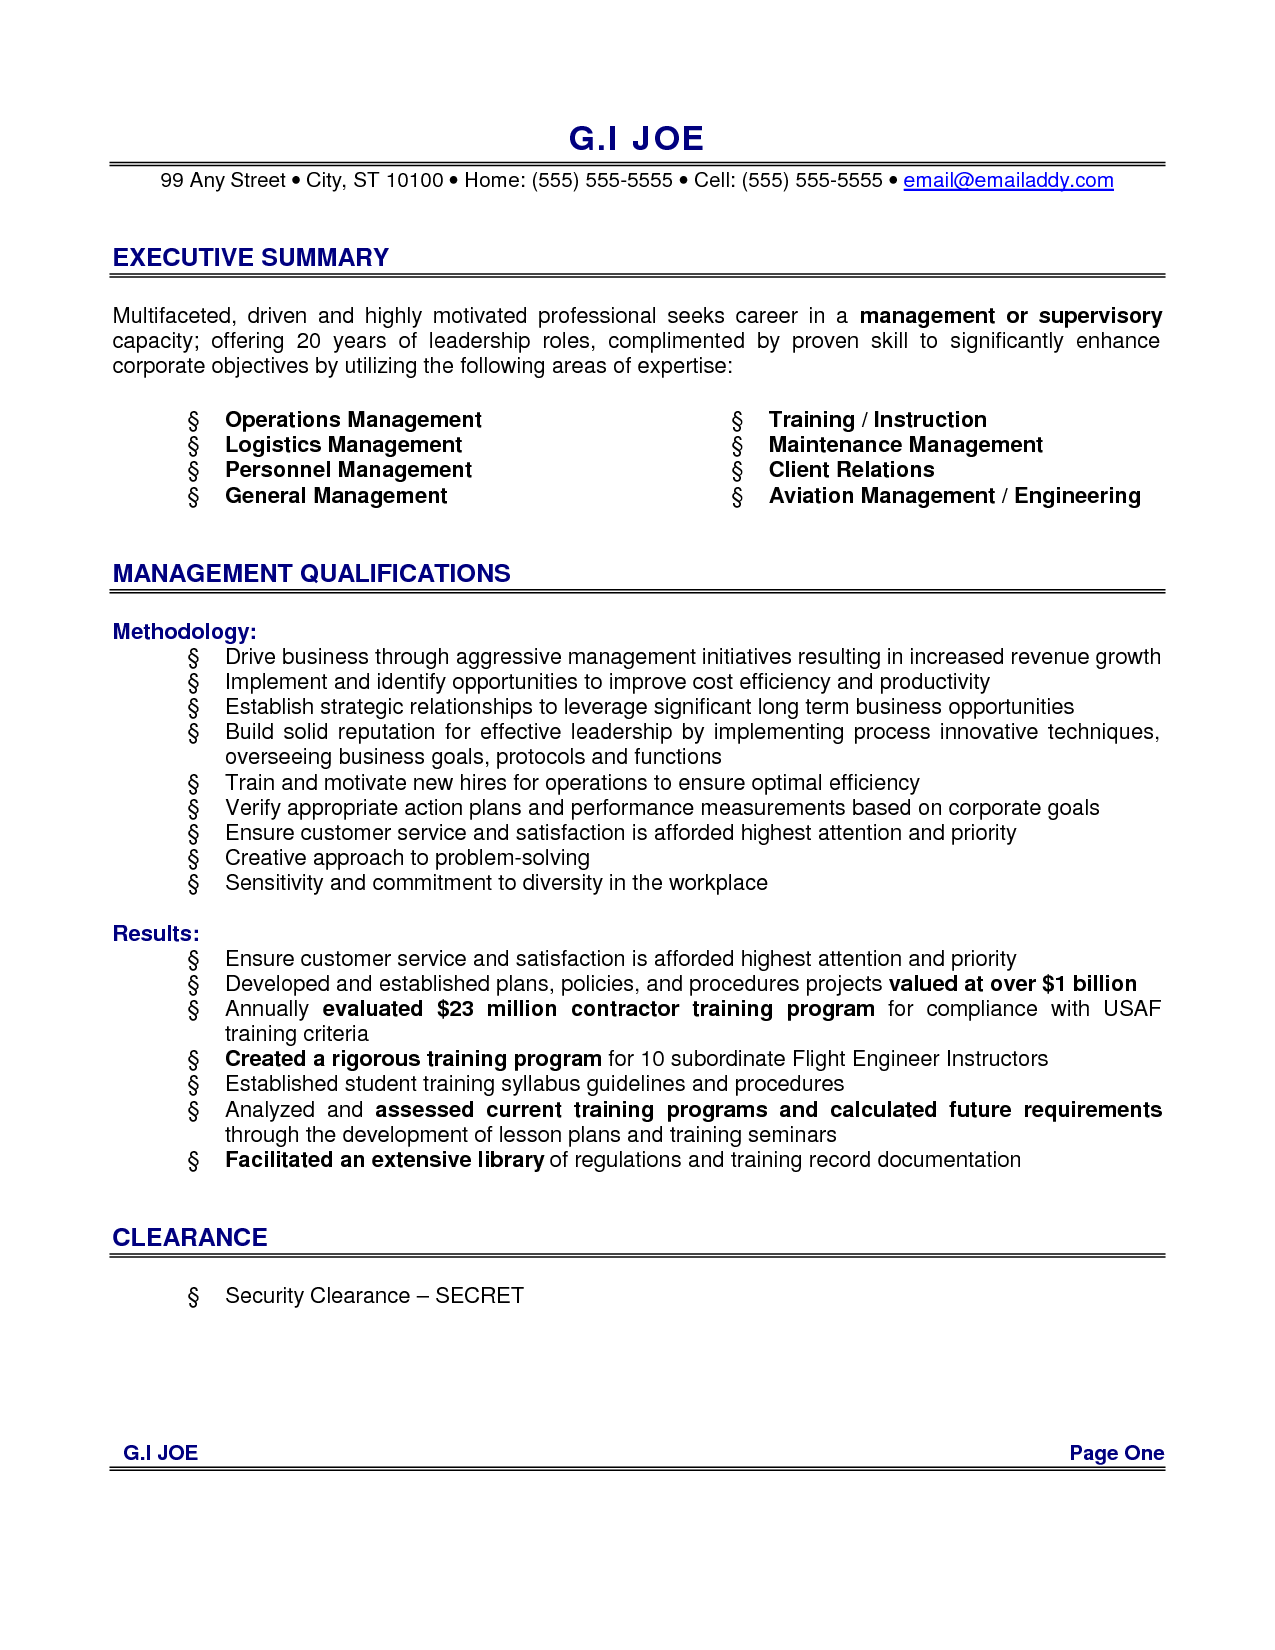 Beau Resume Examples For Executive Summary With Management Qualifications , Executive  Resume Example As Writing Guidelines